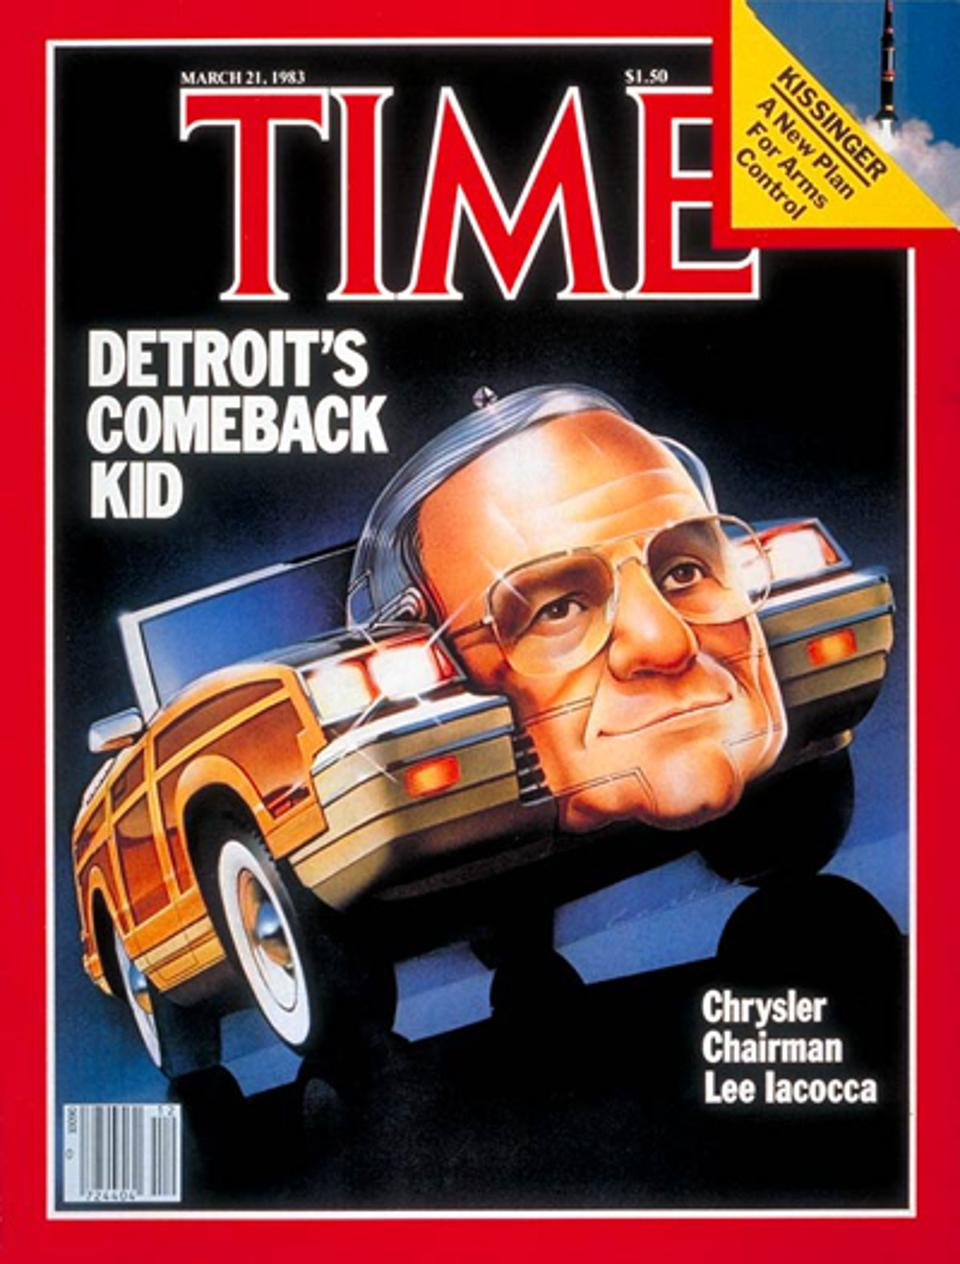 Lee Iacocca was on the covers of most major magazines over ten years.